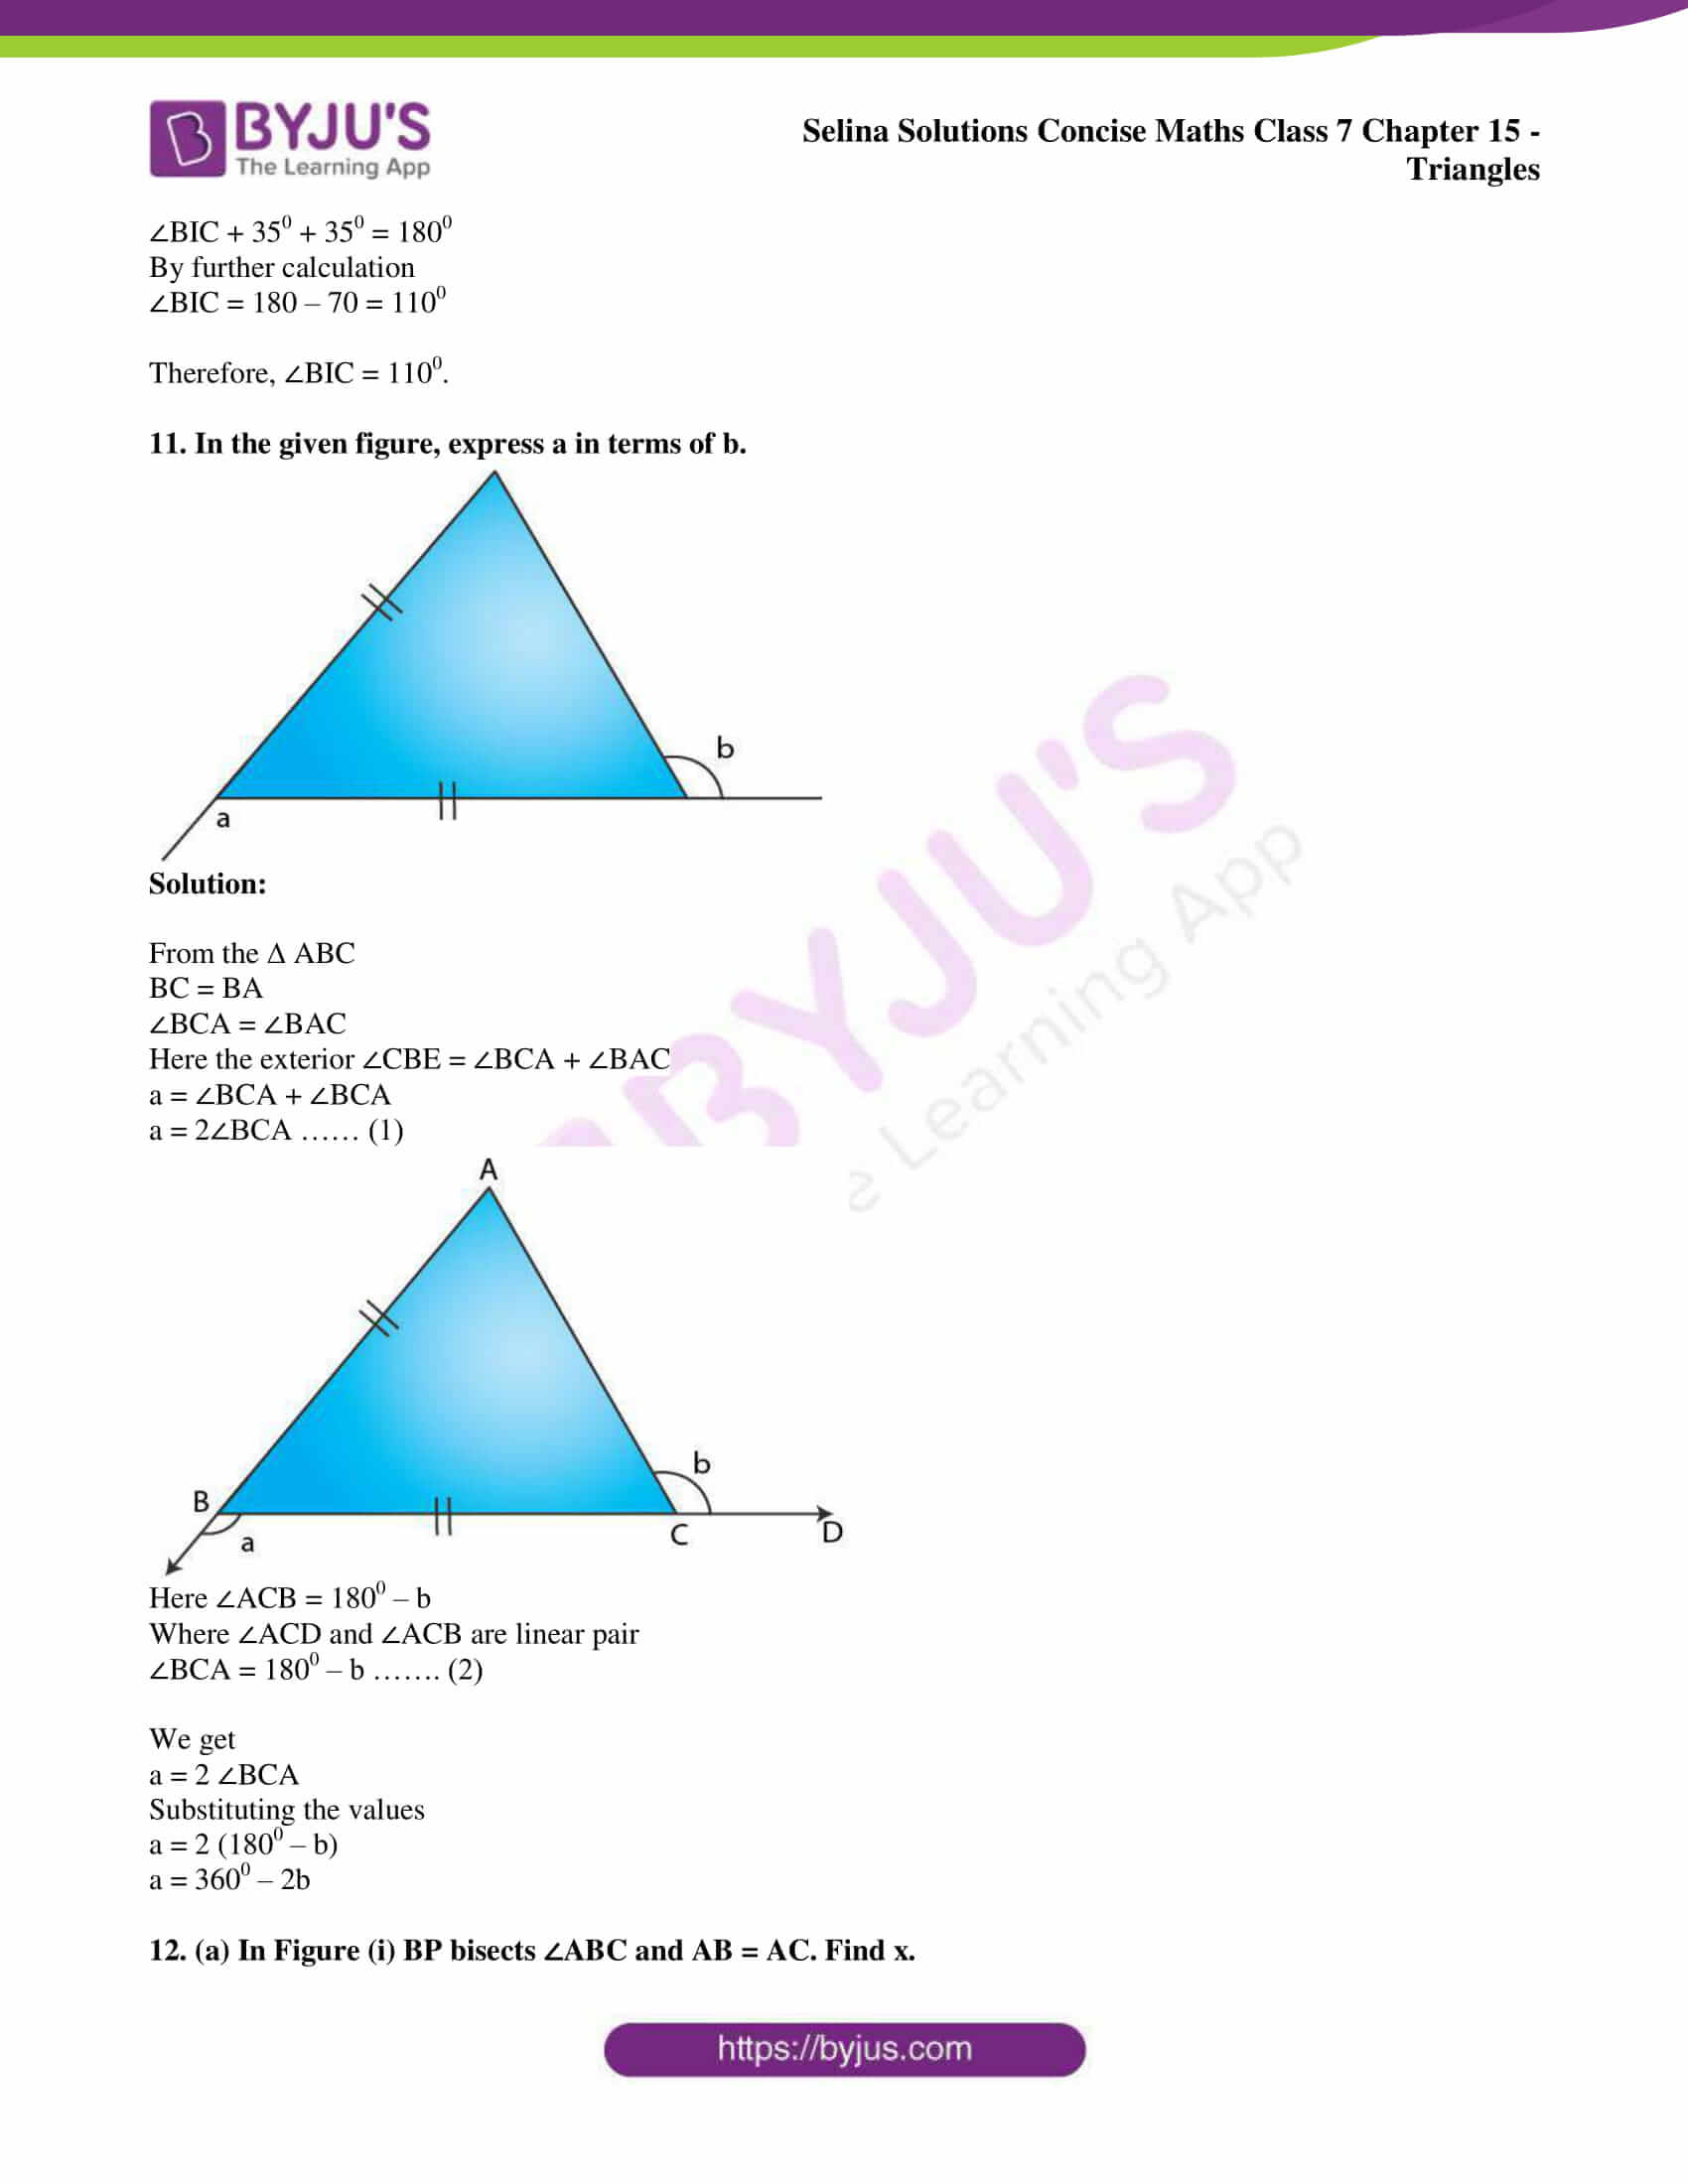 selina sol concise maths class 7 chapter 15 ex b 09